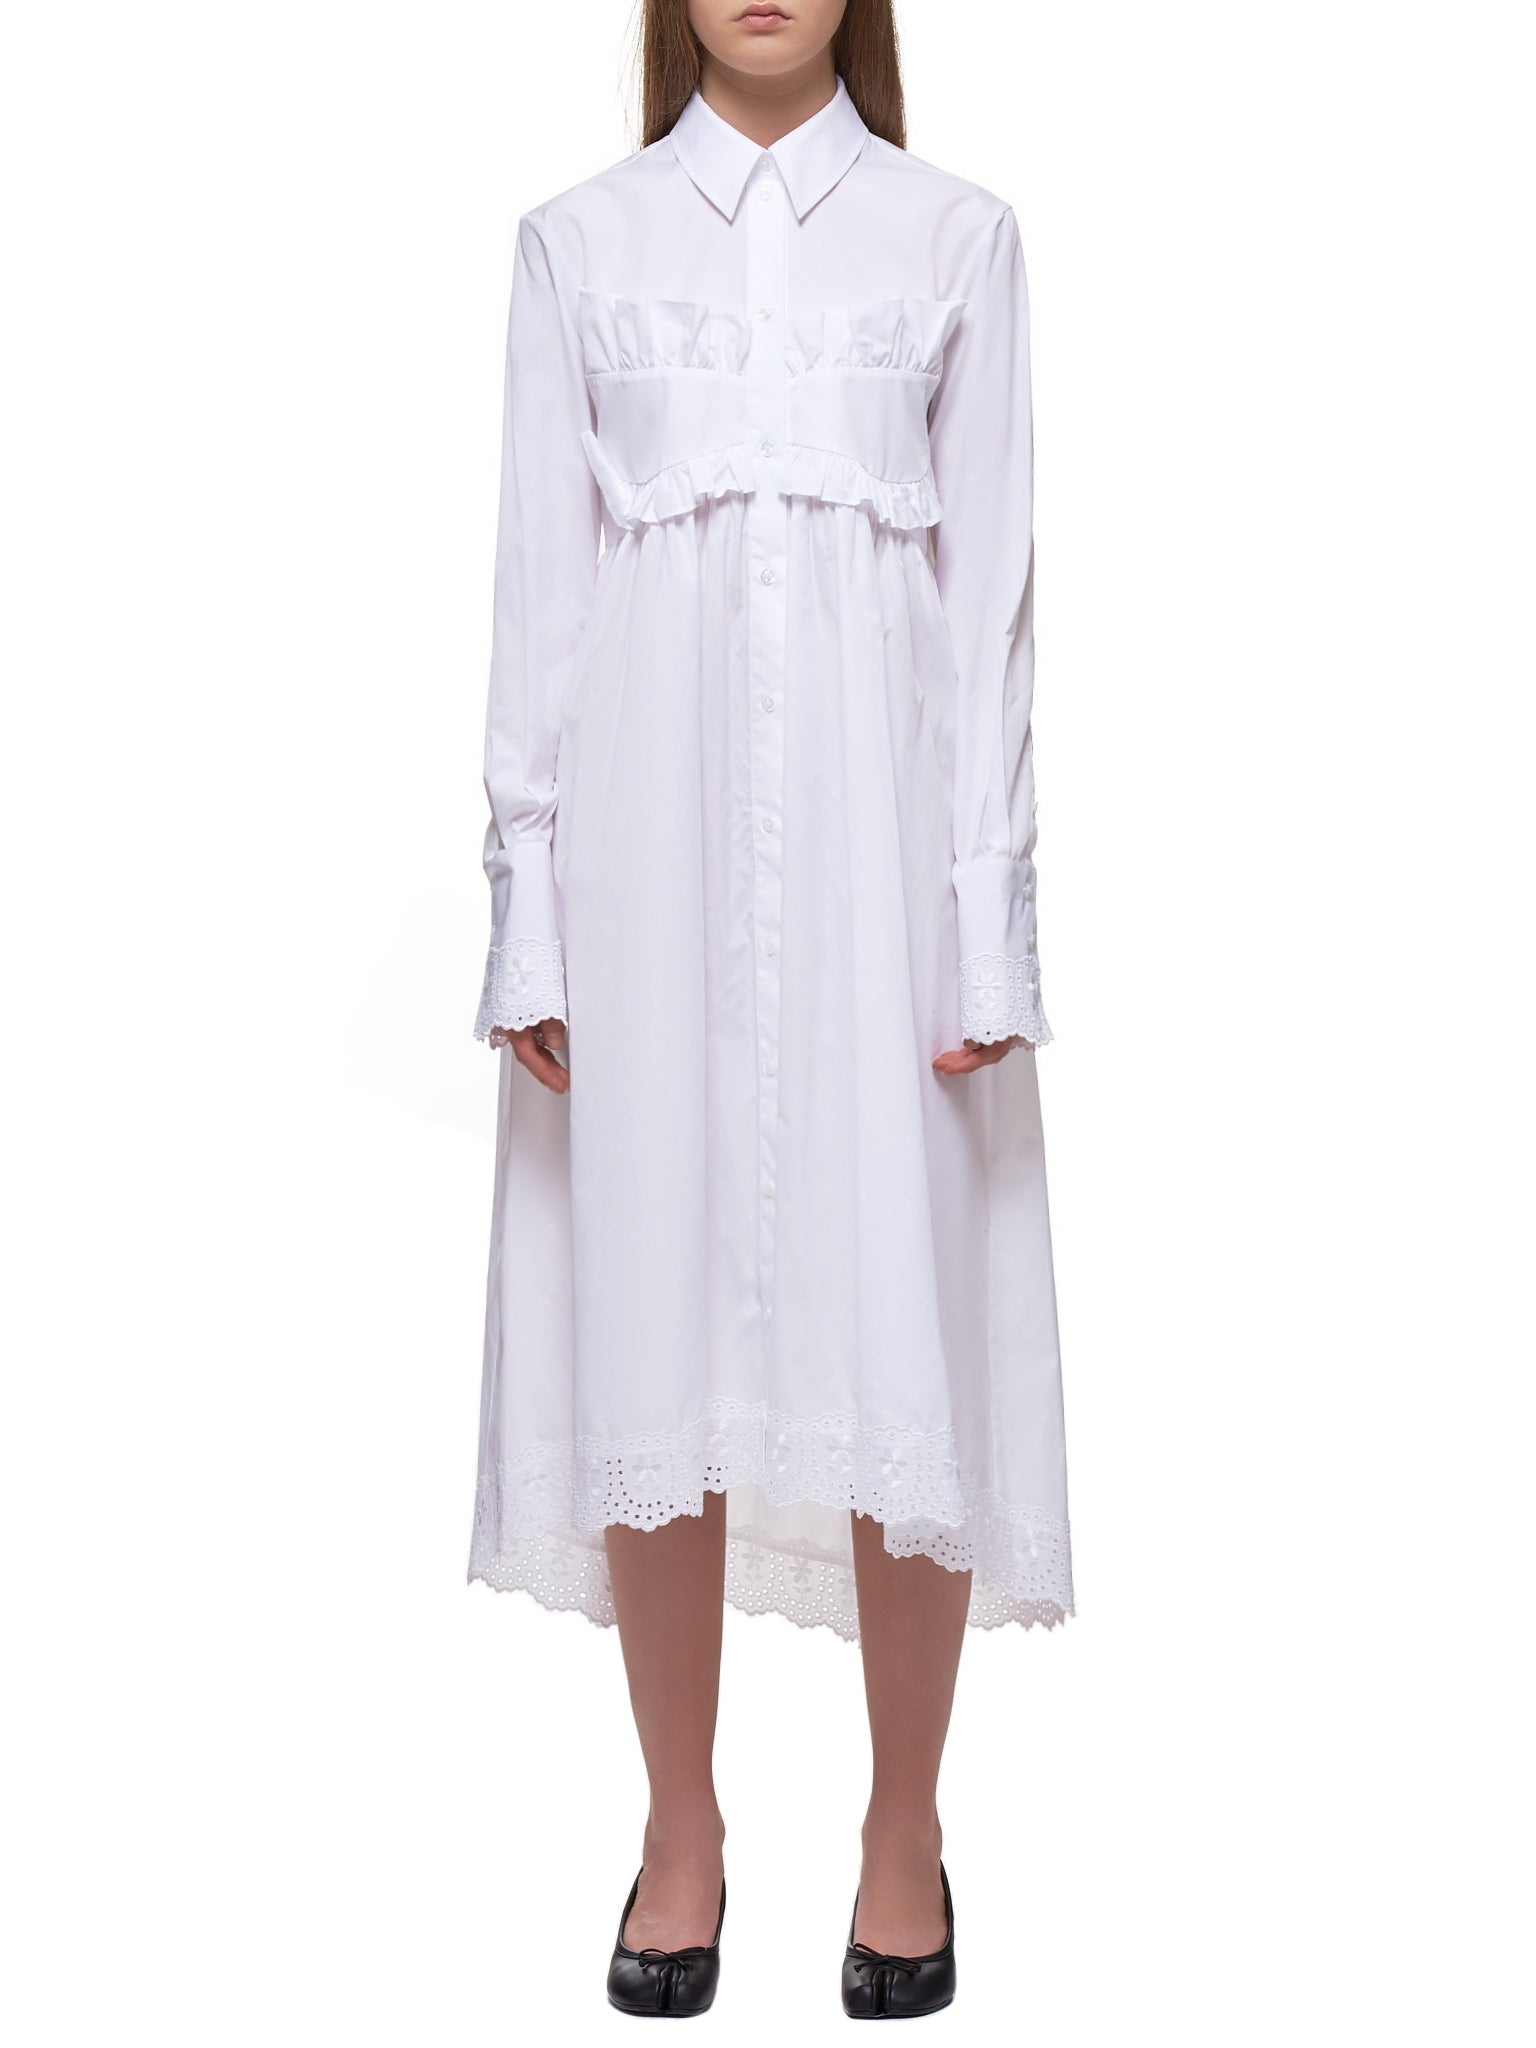 Simone Rocha Dress - Hlorenzo Front